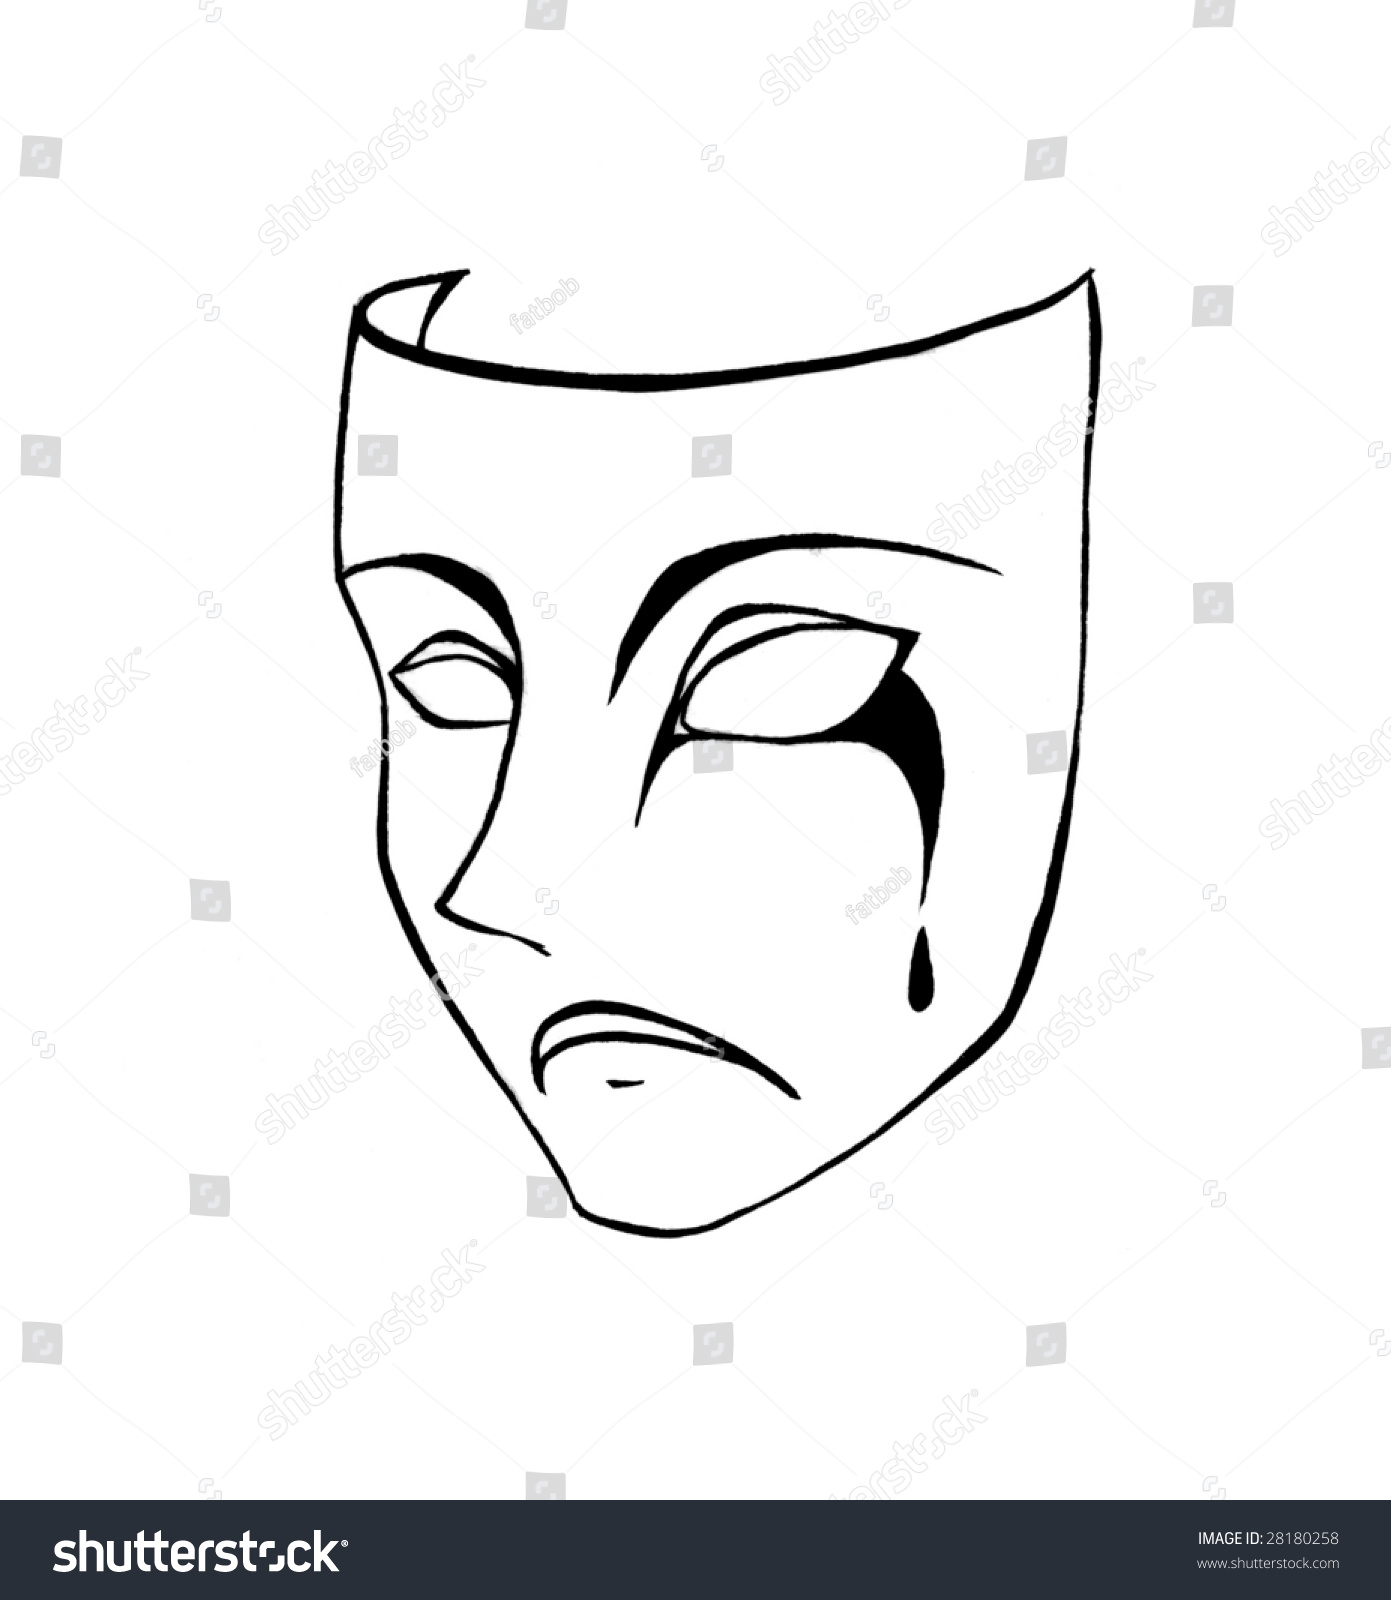 A black and white pencil sketch of a sorrowful face mask with tears